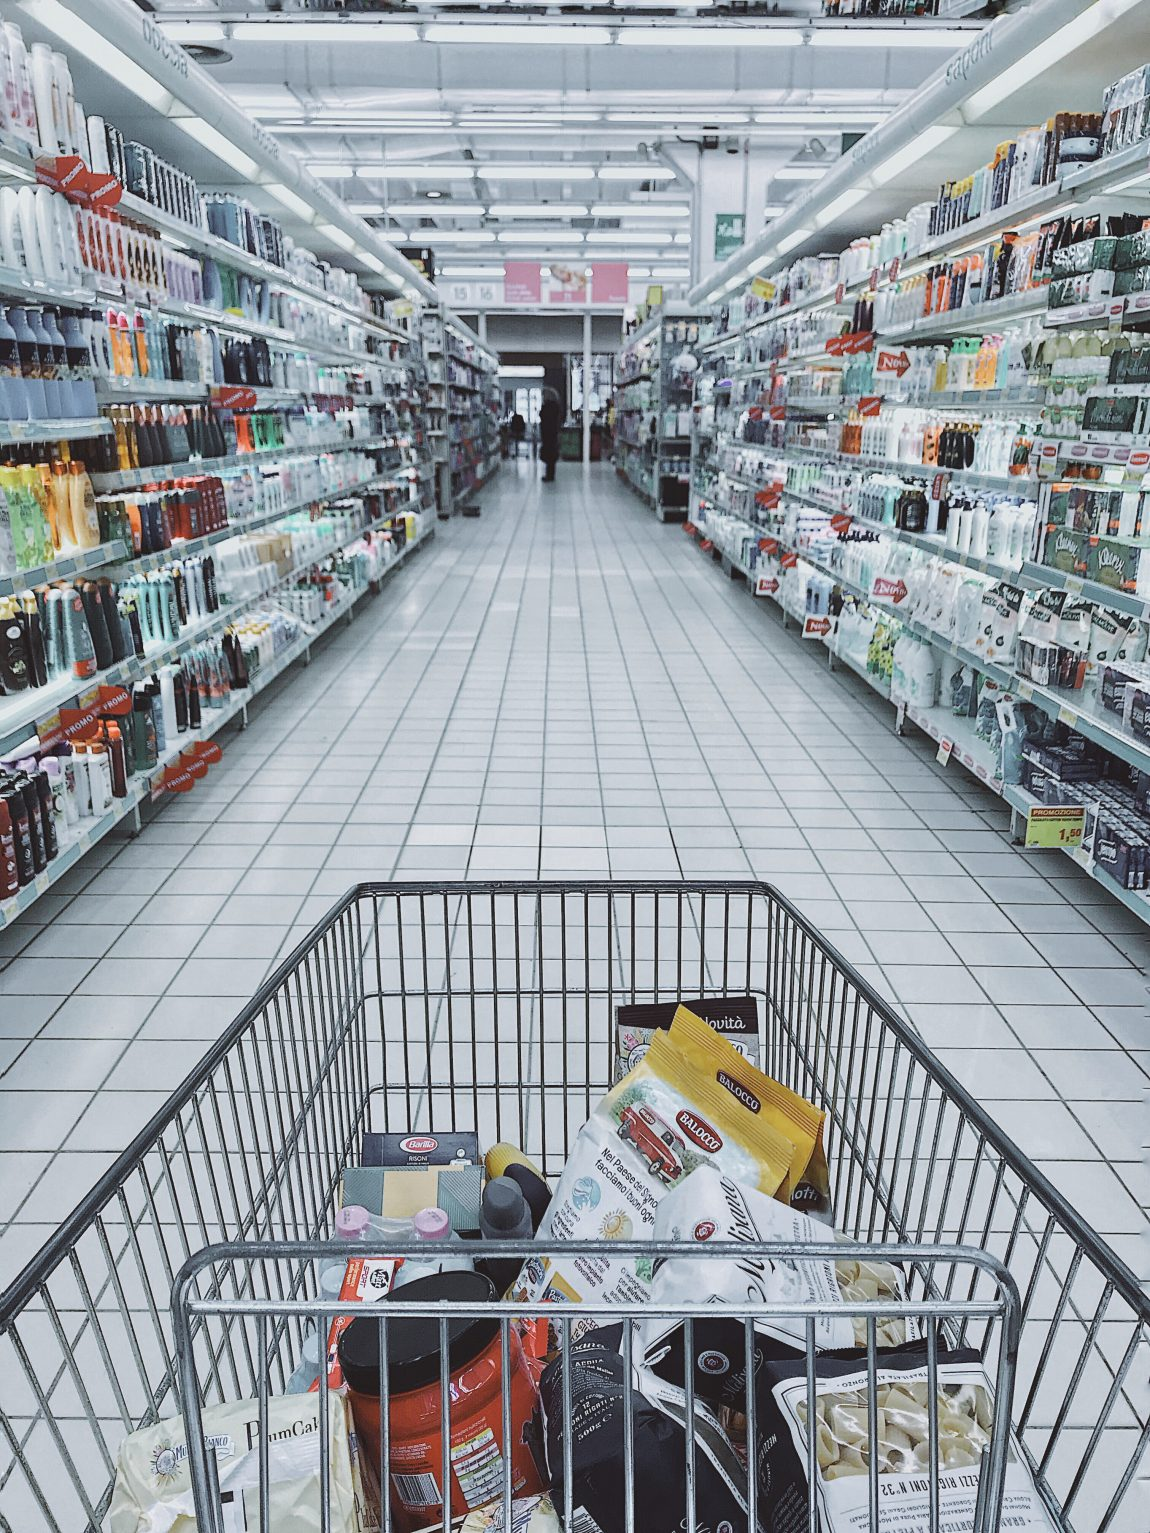 grocery's in a trolley in the supermarket